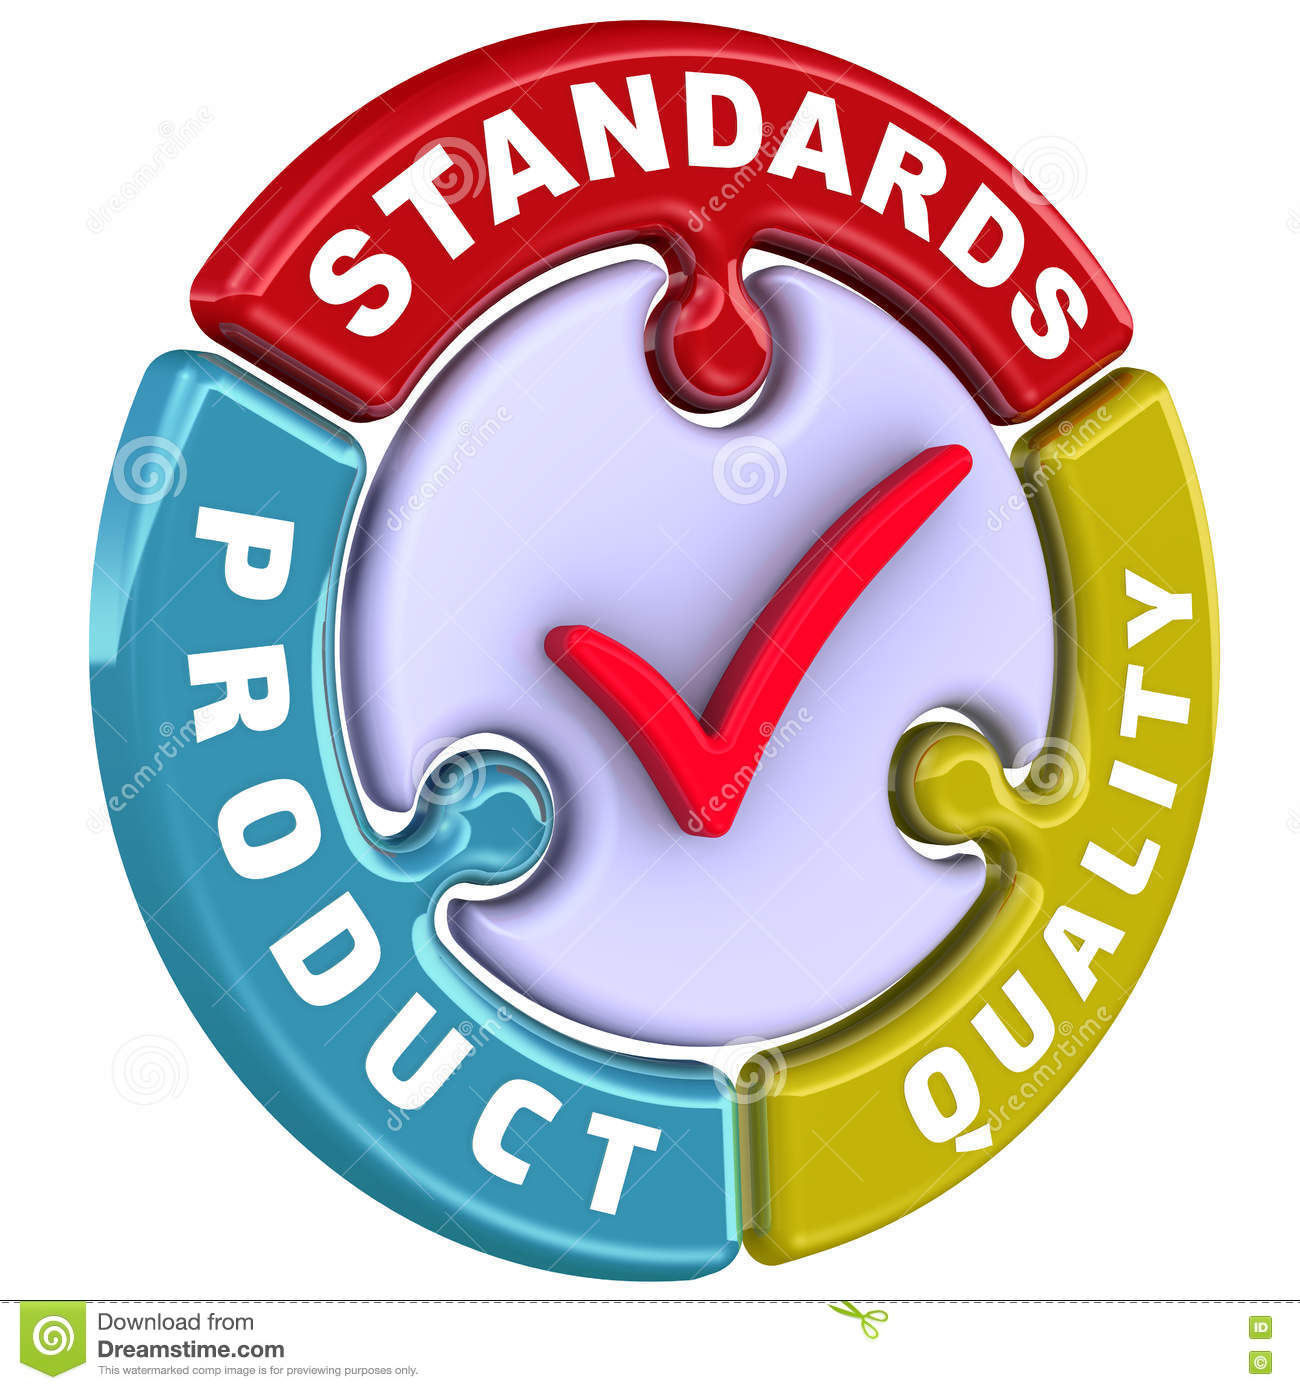 Product quality management is a comprehensive set of tools that enables organizations to control and manage the data related to product quality across enterprises. This product data includes product and manufacturing defects, field failures, customer complaints, product improvements and corrective and preventive actions requests.